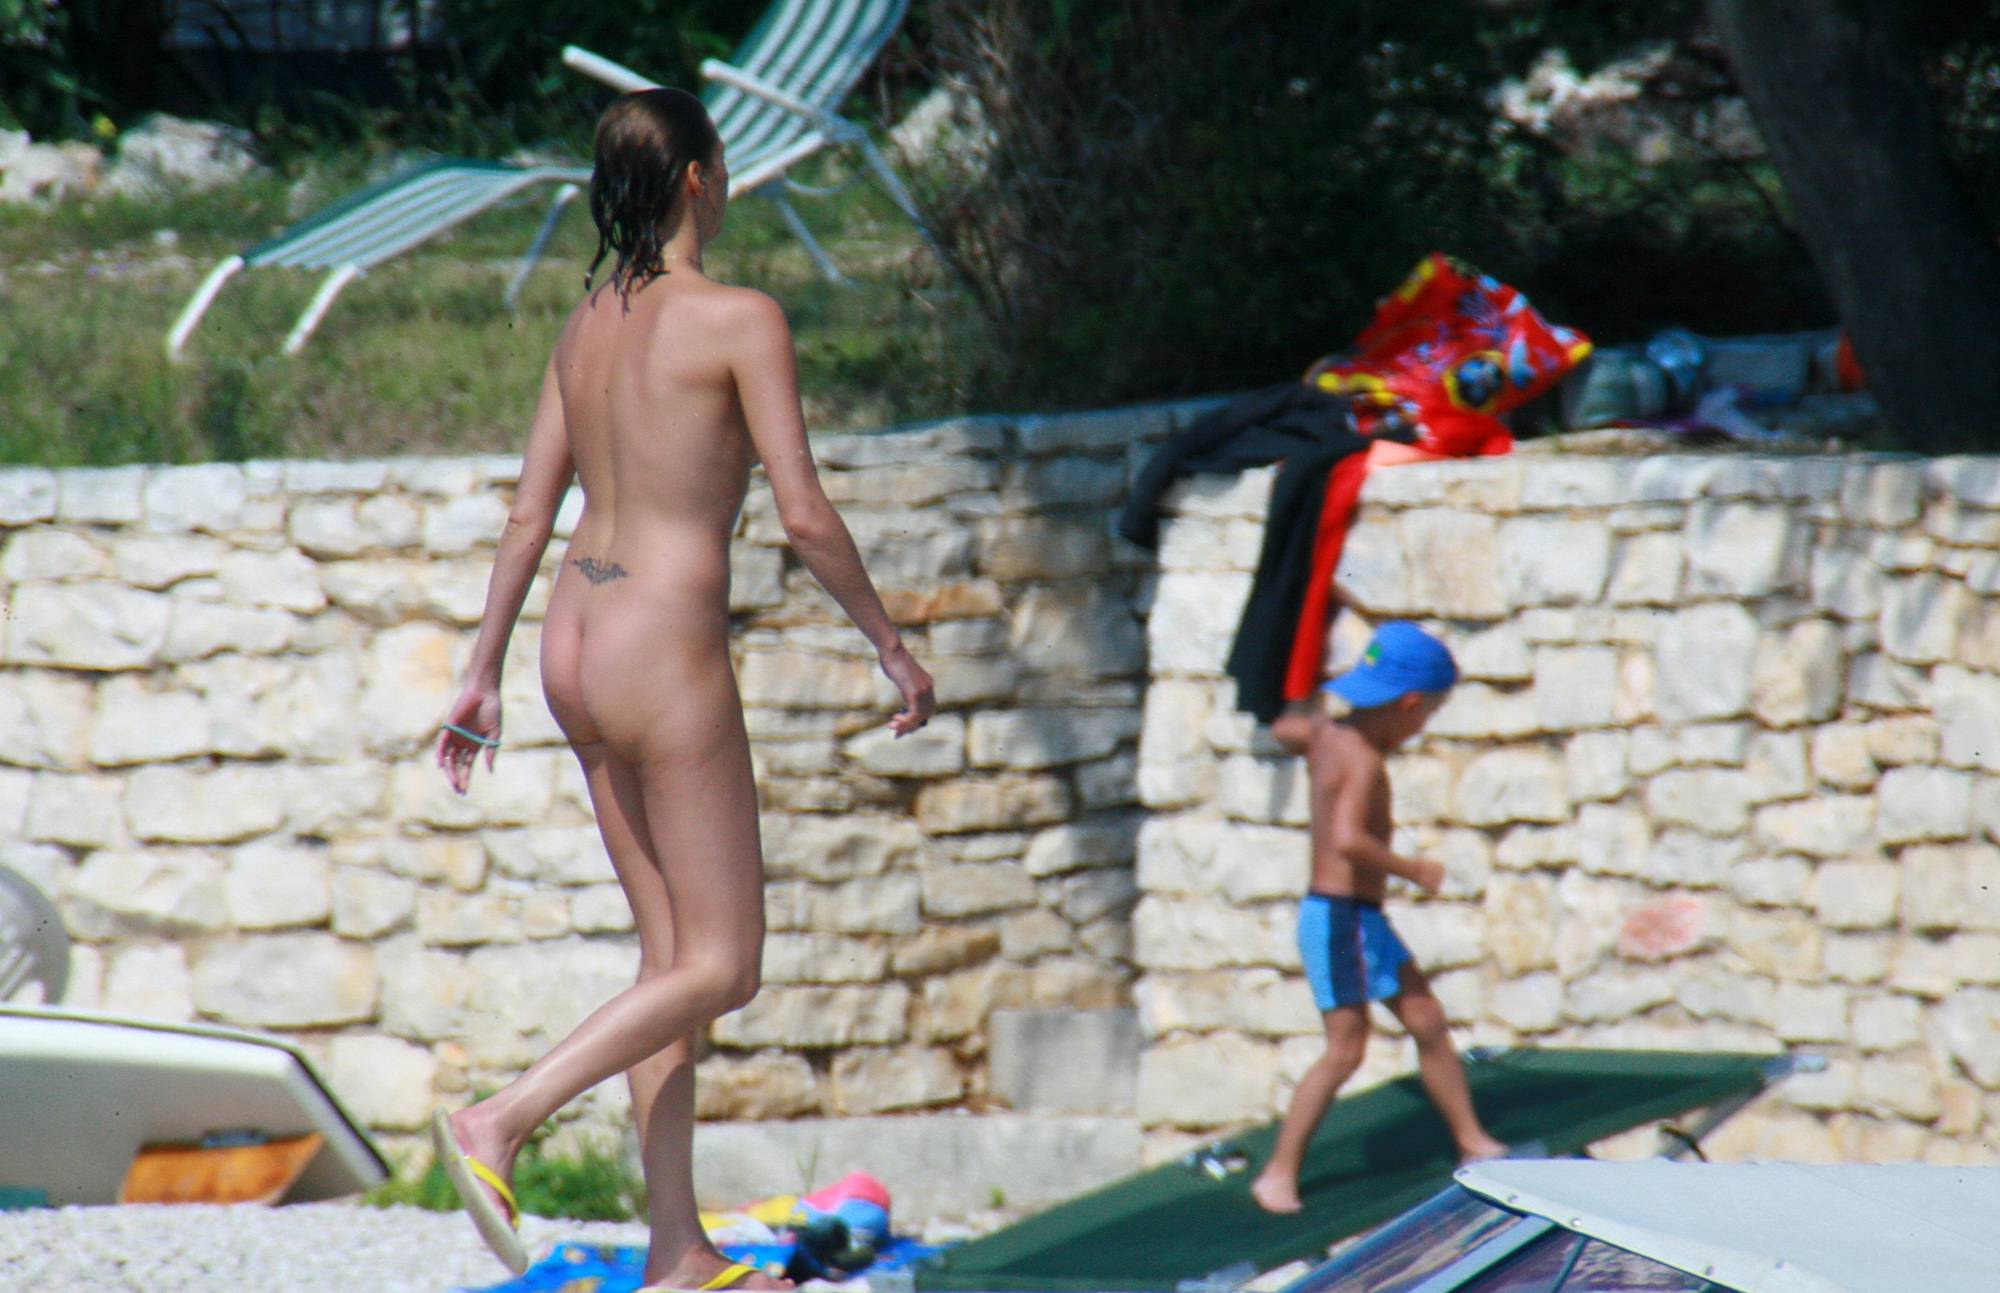 Pure Nudism Gallery Calm Naturist Afternoon - 1